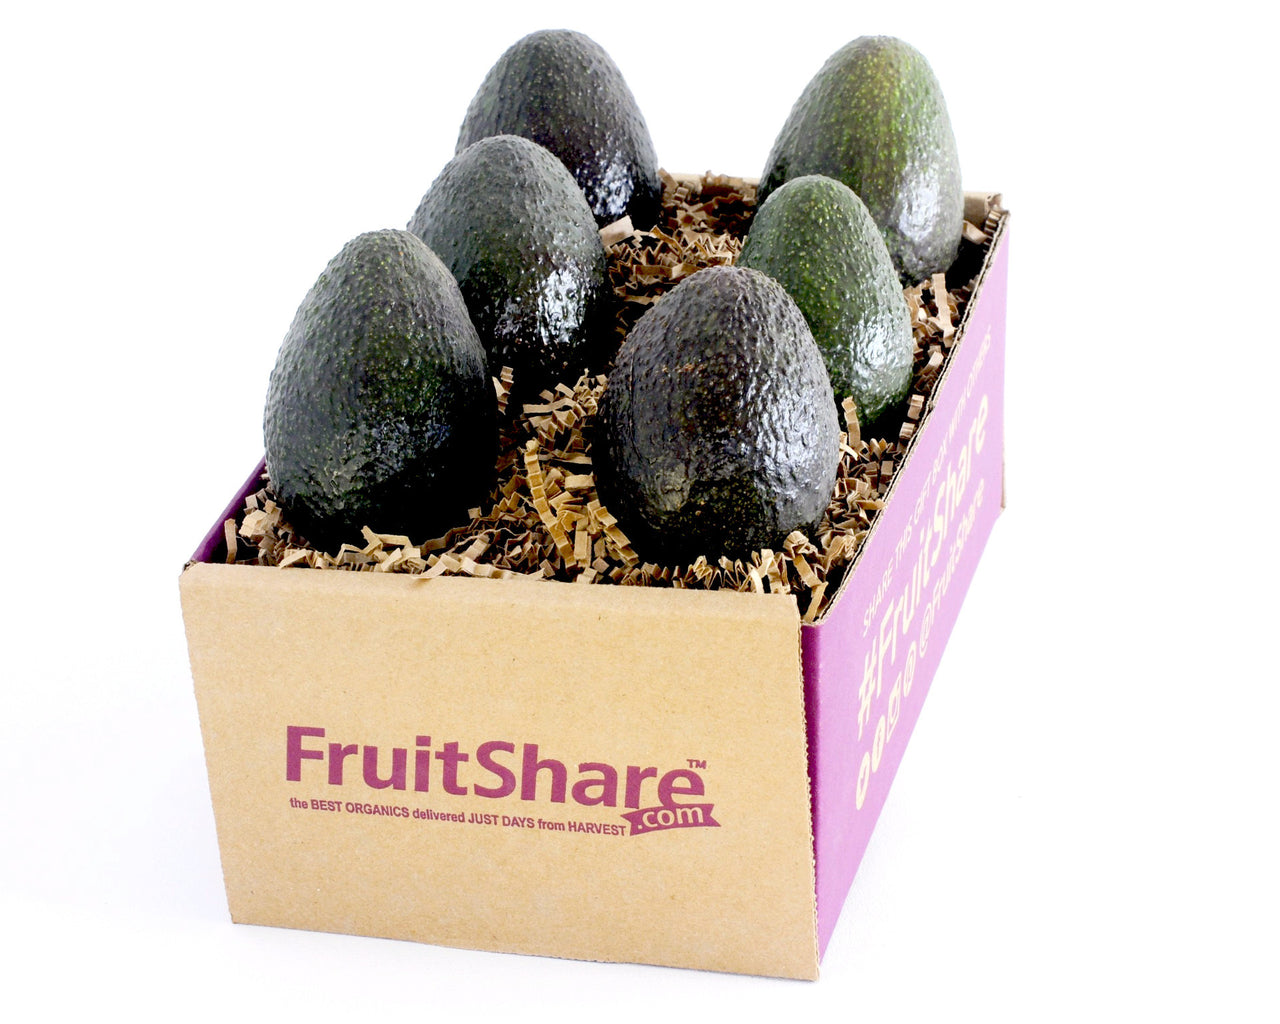 FruitShare - Seasonal Fruit Gifts - Organic Avocados - Spring Fruit